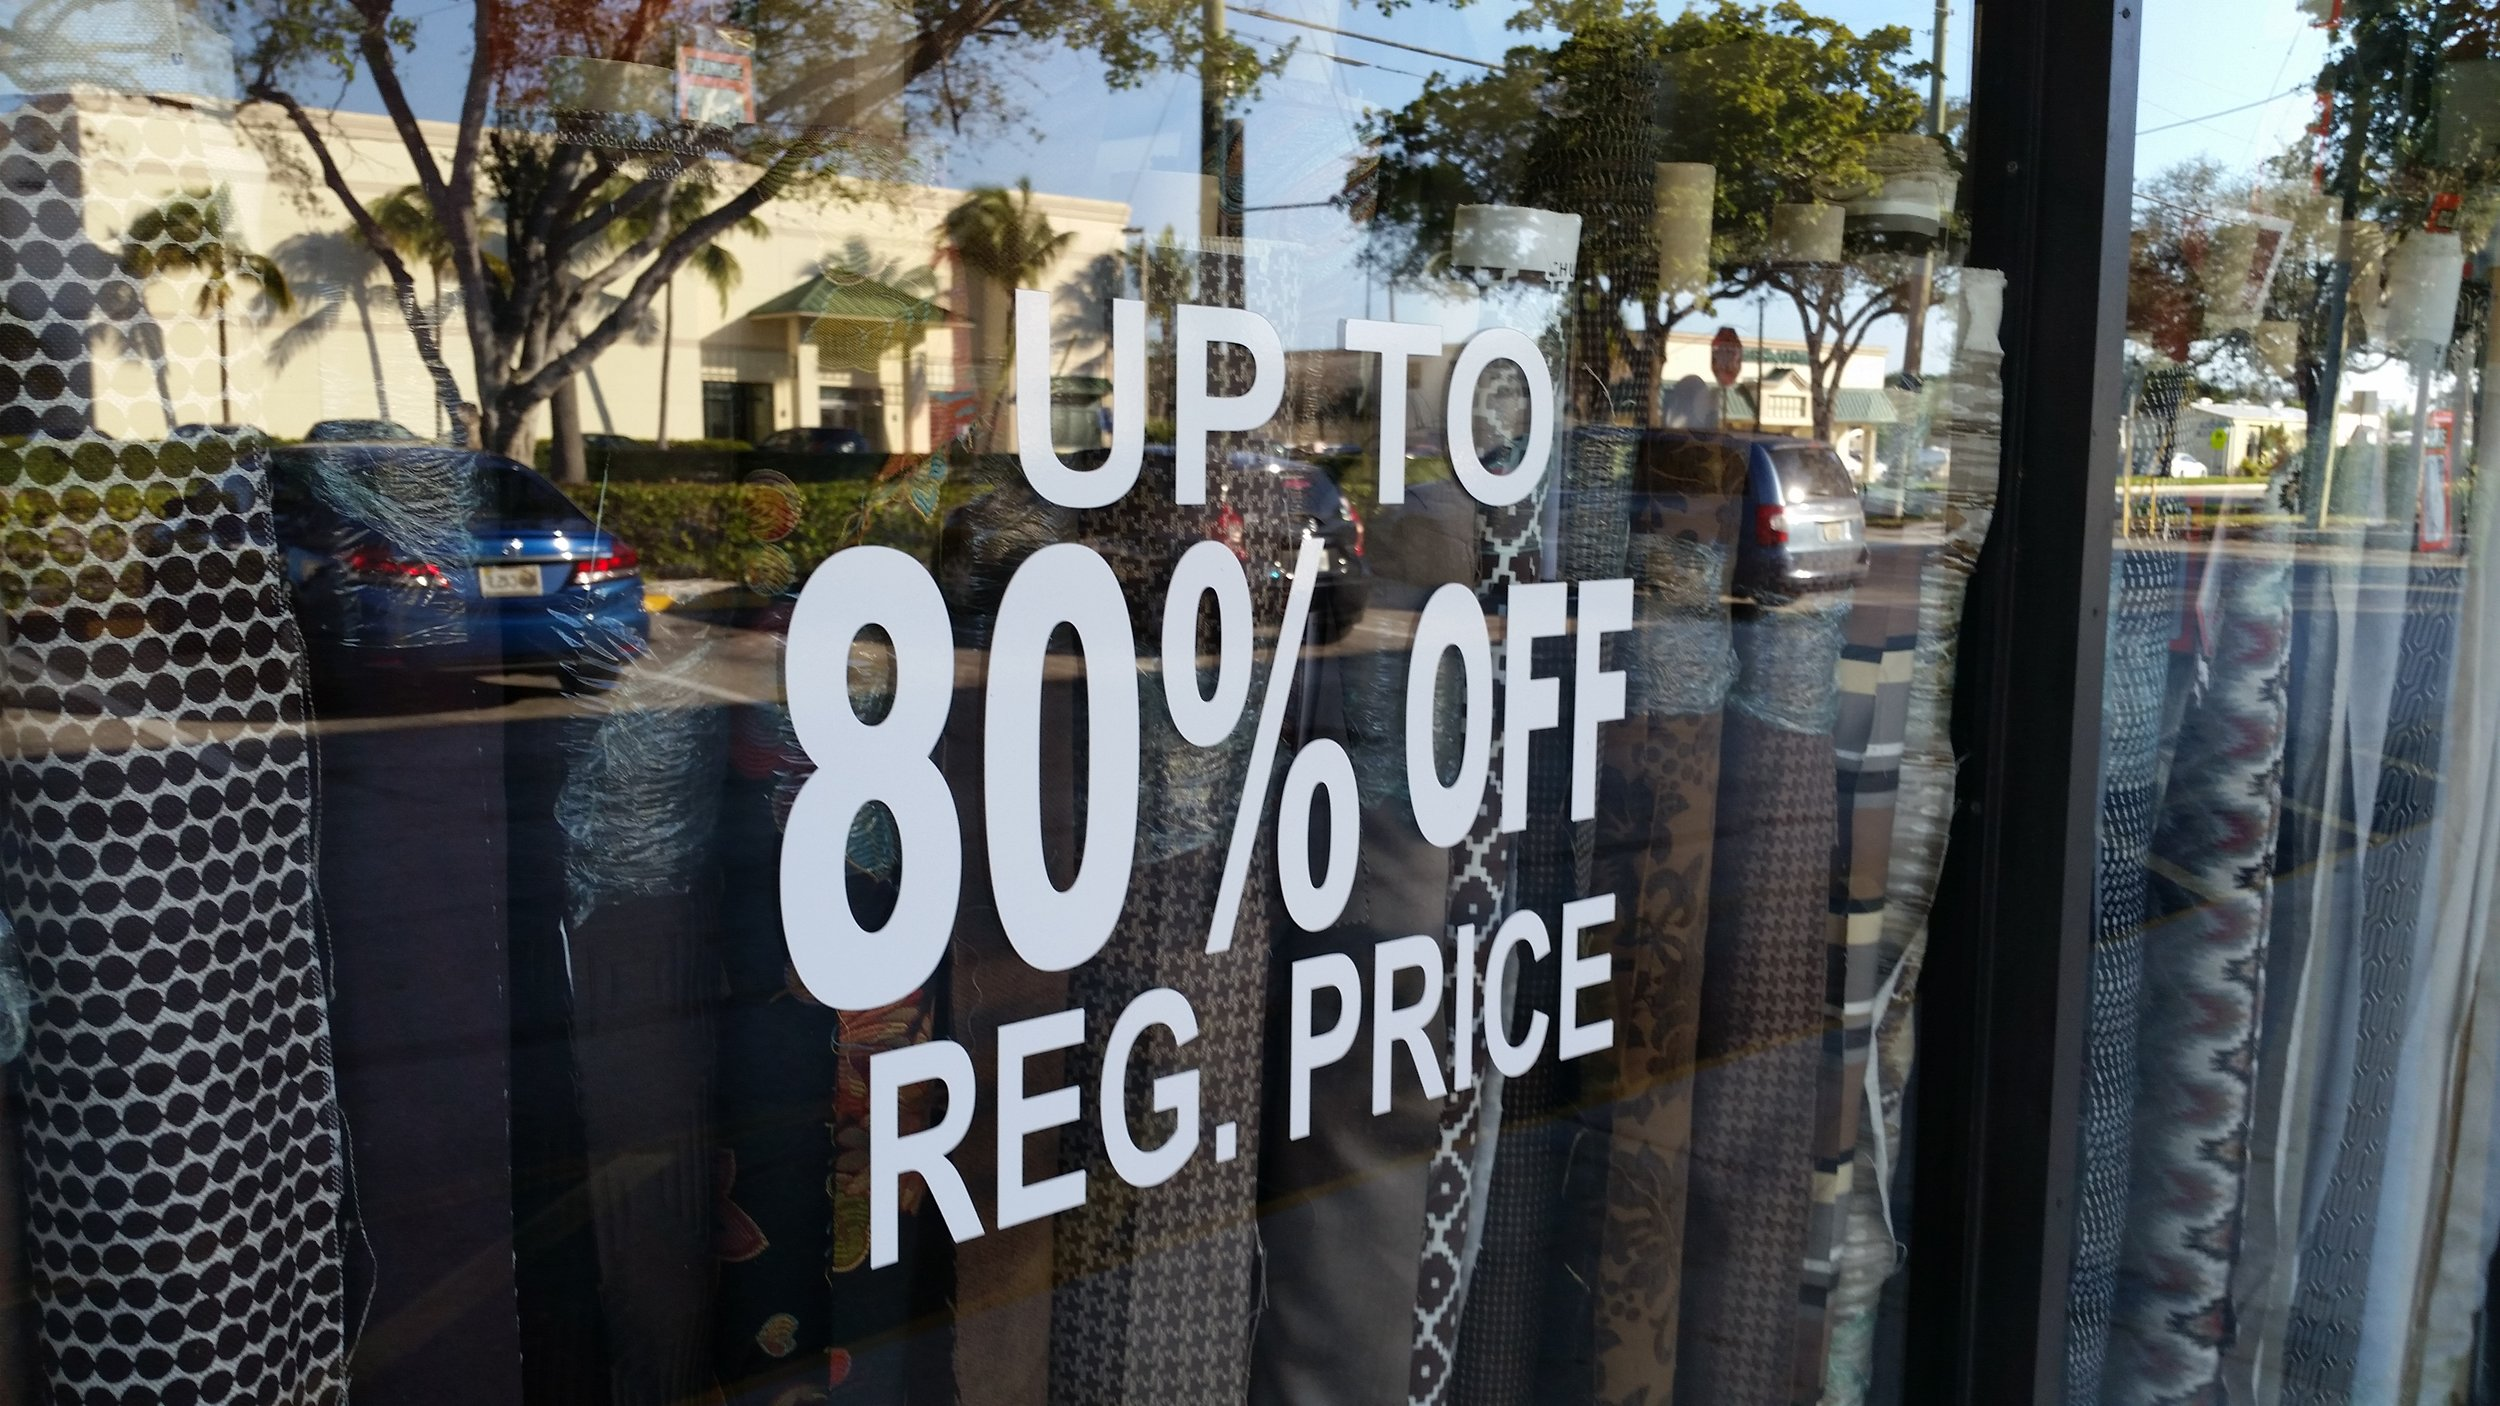 A sign like this will get you you excited, if you're a bargain hunter, like I am. But... I was dismally disappointed once I peered into the window and saw the prices per yard.